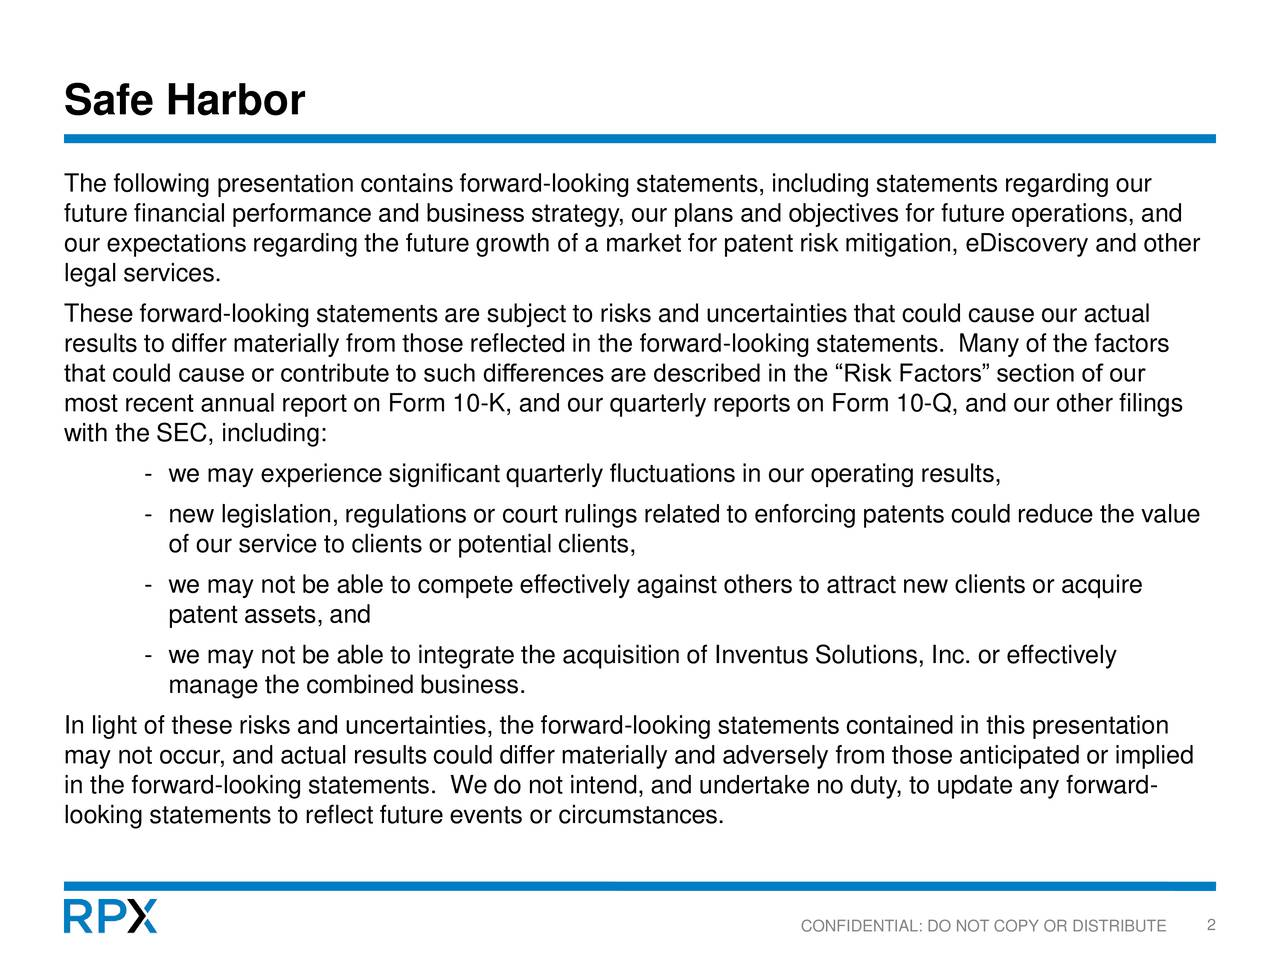 The following presentation contains forward-looking statements, including statements regarding our future financial performance and business strategy, our plans and objectives for future operations, and our expectations regarding the future growth of a market for patent risk mitigation, eDiscovery and other legal services. These forward-looking statements are subject to risks and uncertainties that could cause our actual results to differ materially from those reflected in the forward-looking statements. Many of the factors that could cause or contribute to such differences are described in the Risk Factors section of our most recent annual report on Form 10-K, and our quarterly reports on Form 10-Q, and our other filings with the SEC, including: - we may experience significant quarterly fluctuations in our operating results, - new legislation, regulations or court rulings related to enforcing patents could reduce the value of our service to clients or potential clients, - we may not be able to compete effectively against others to attract new clients or acquire patent assets, and - we may not be able to integrate the acquisition of Inventus Solutions, Inc. or effectively manage the combined business. In light of these risks and uncertainties, the forward-looking statements contained in this presentation may not occur, and actual results could differ materially and adversely from those anticipated or implied in the forward-looking statements. We do not intend, and undertake no duty, to update any forward- looking statements to reflect future events or circumstances. CONFIDENTIAL: DO NOT COPY OR DISTRIBUTE